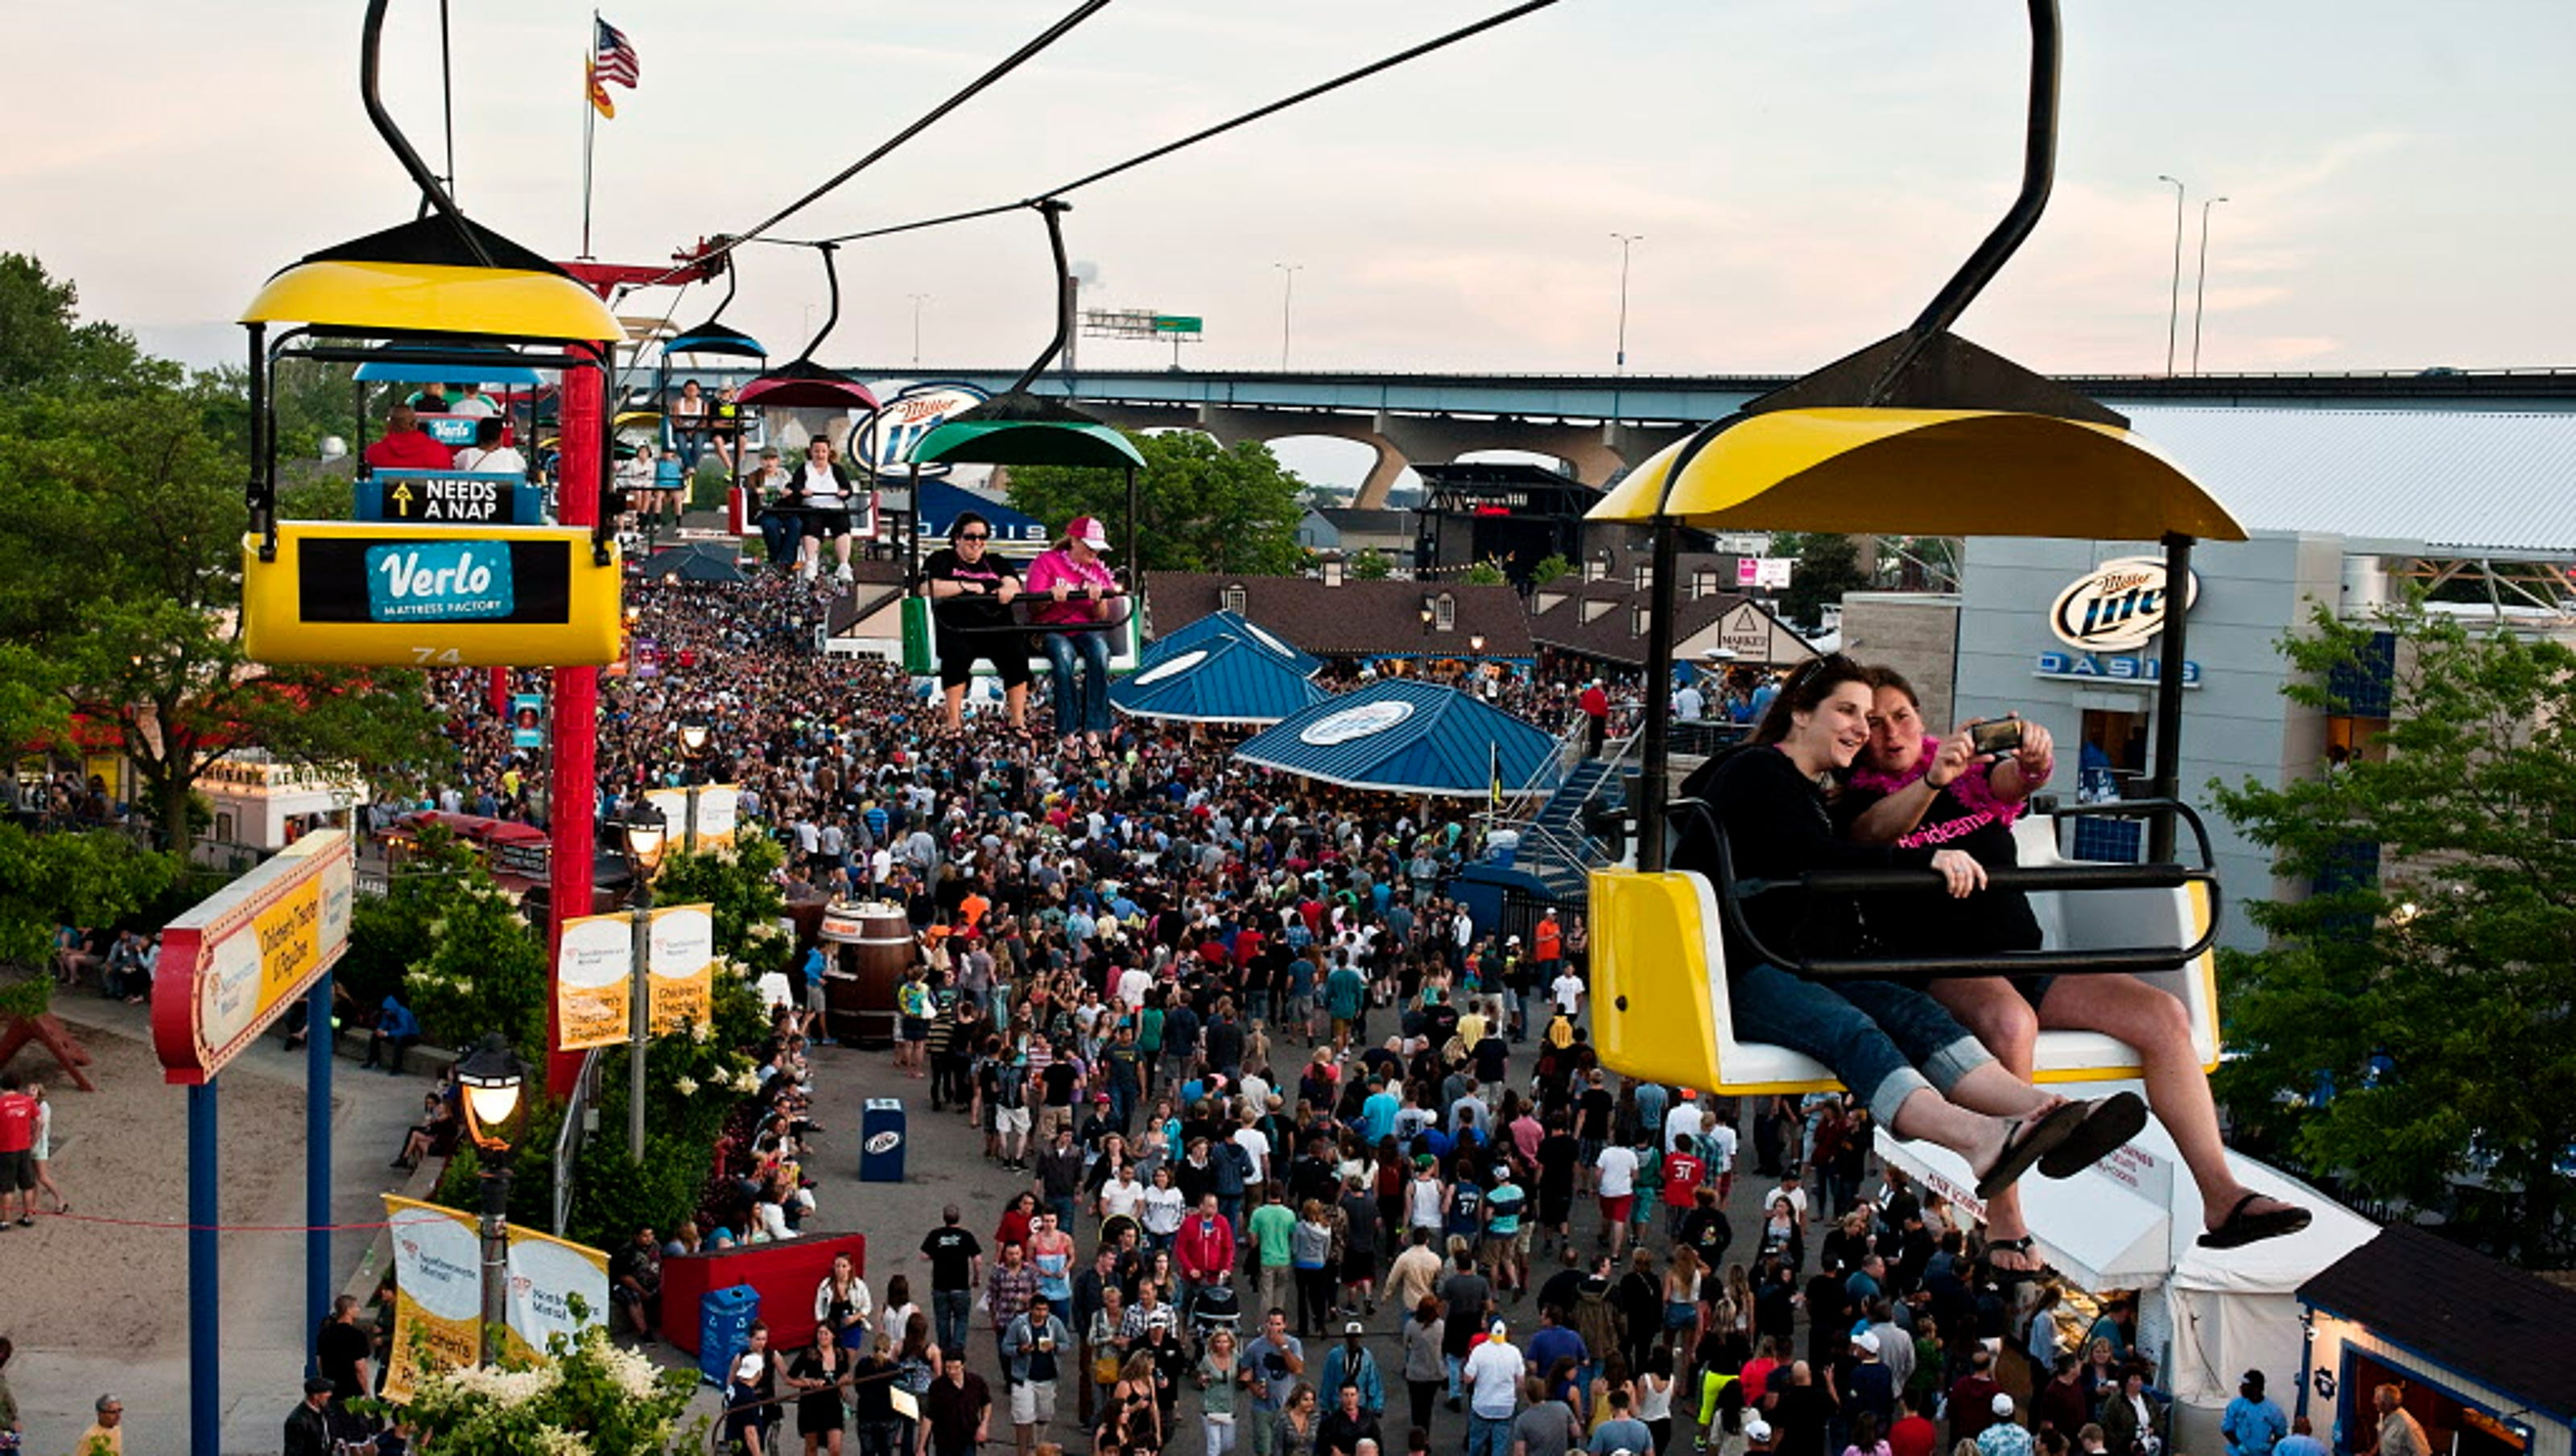 Recalling Three Moons Festival At Orton >> 15 Ways To Get Into Summerfest 2018 Cheaper Or For Free